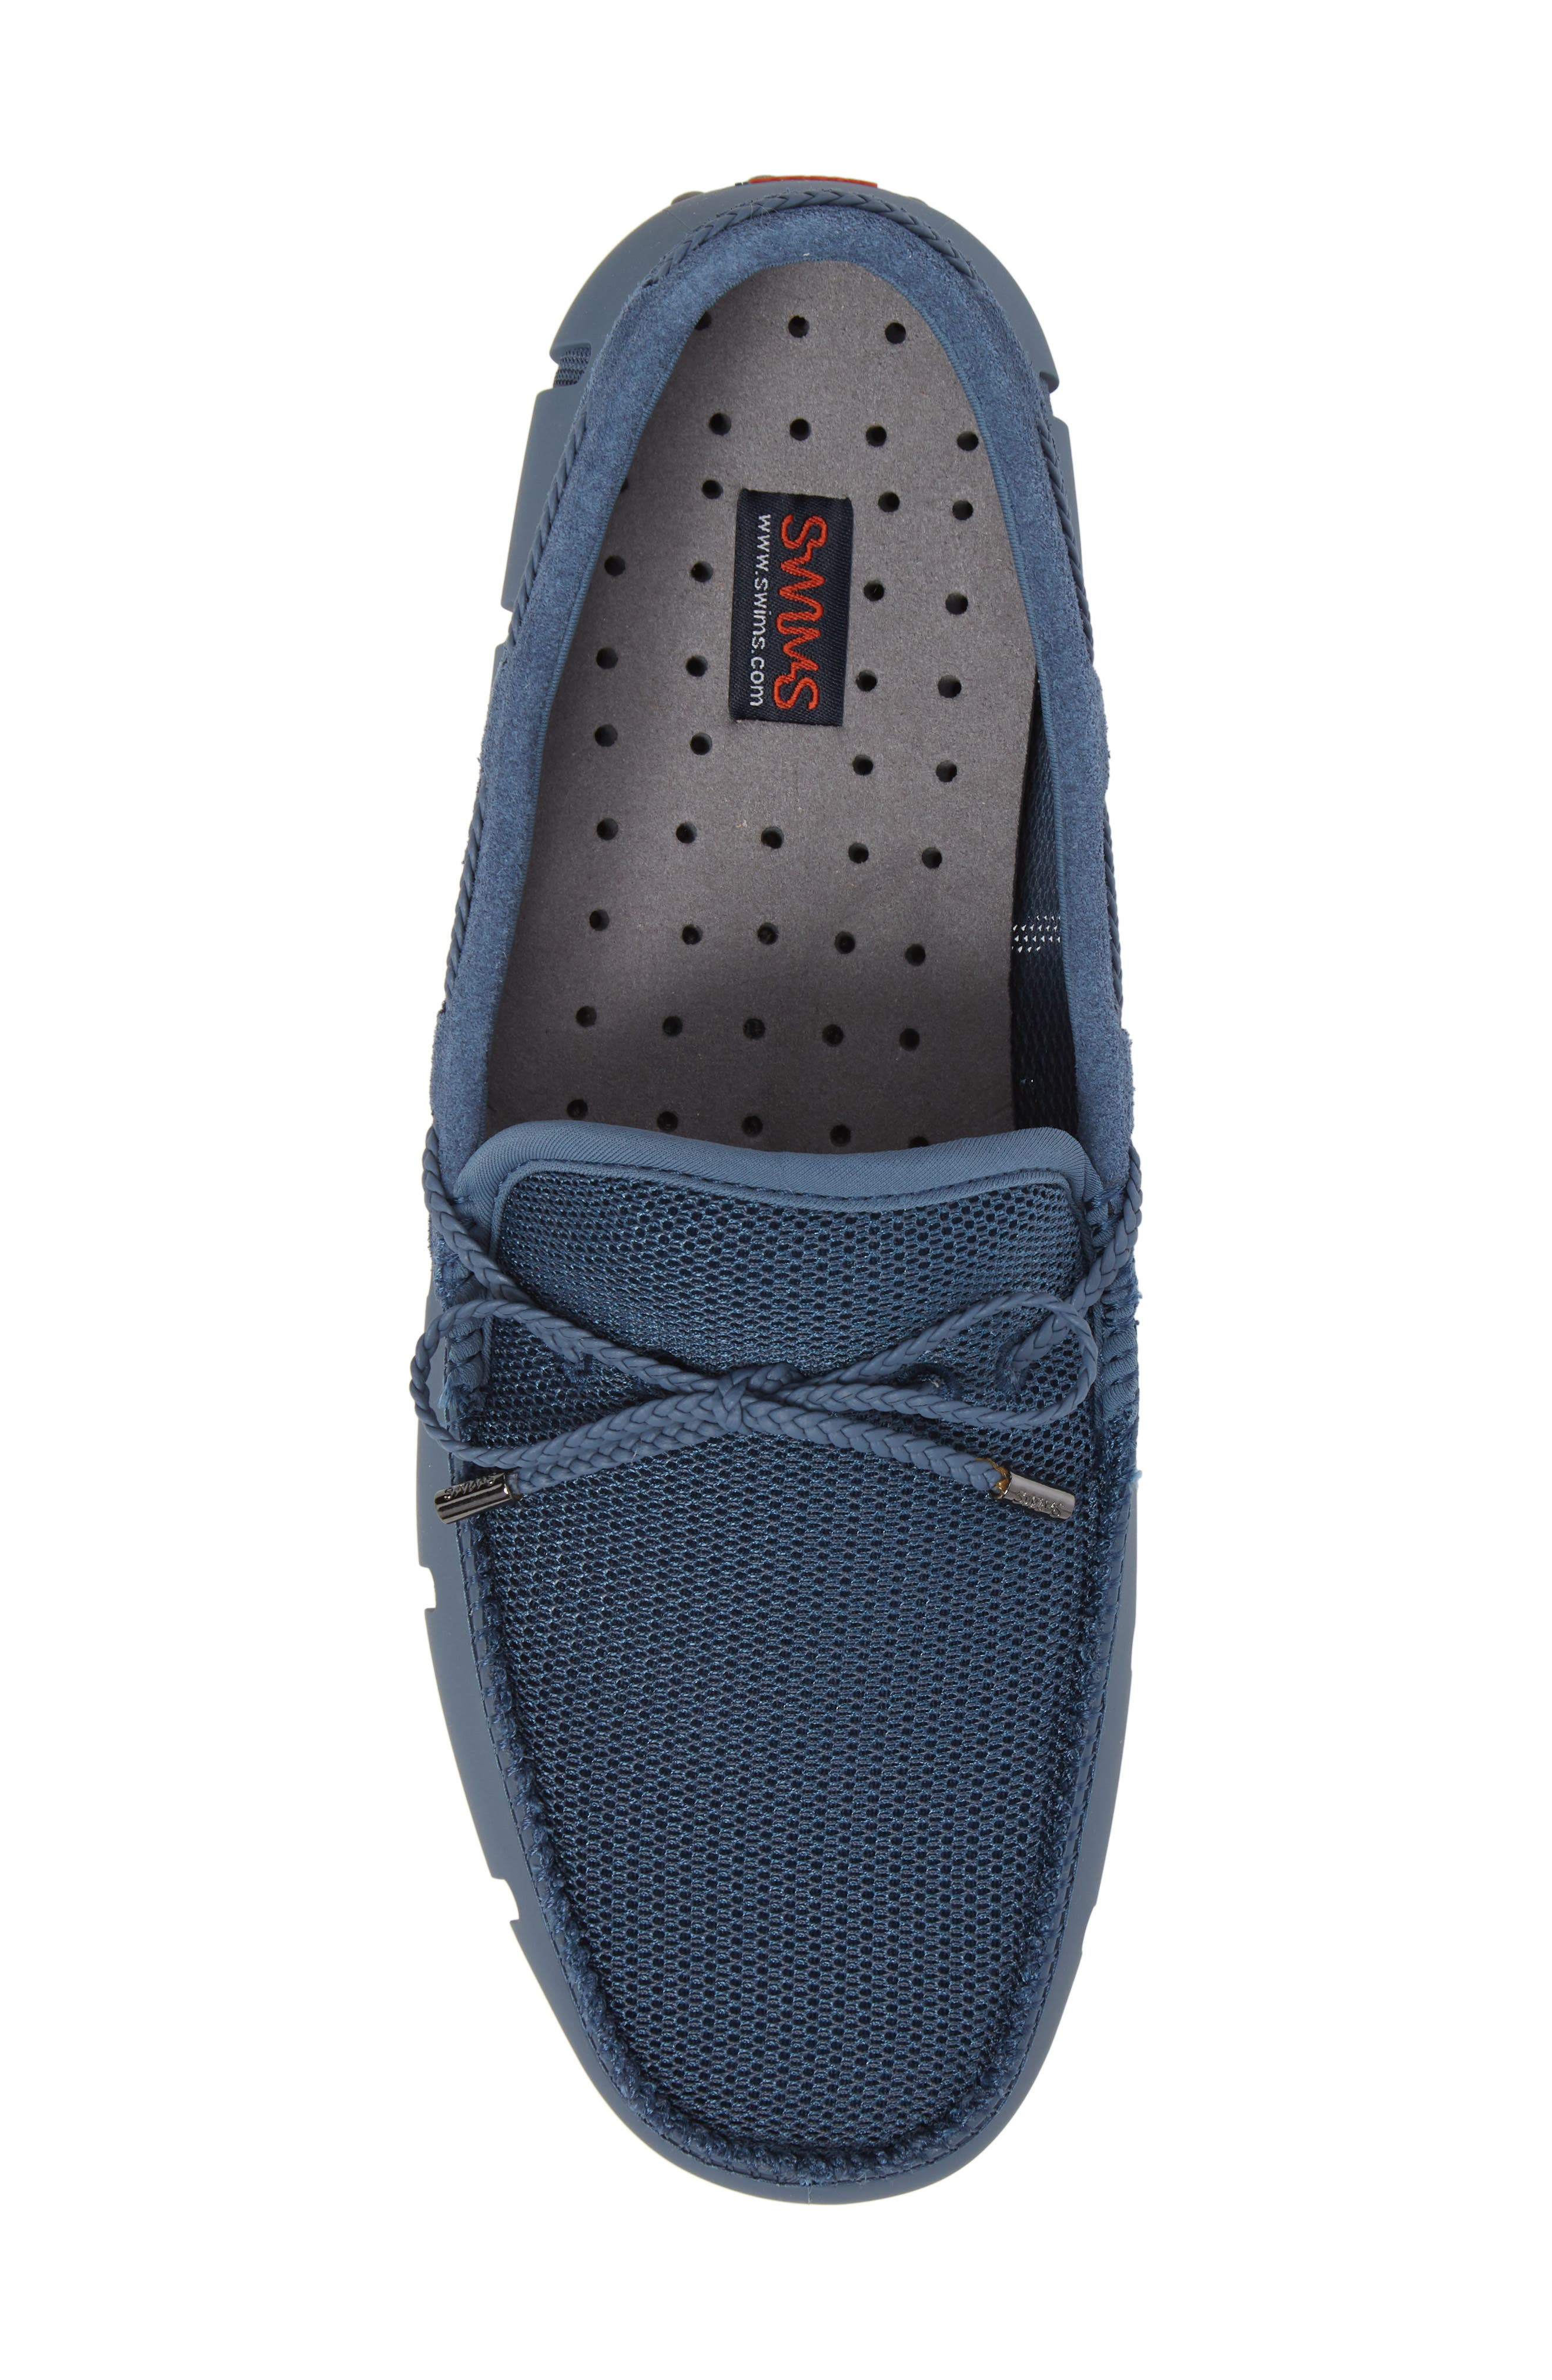 Washable Driving Loafer,                             Alternate thumbnail 5, color,                             Slate/ Grey Fabric